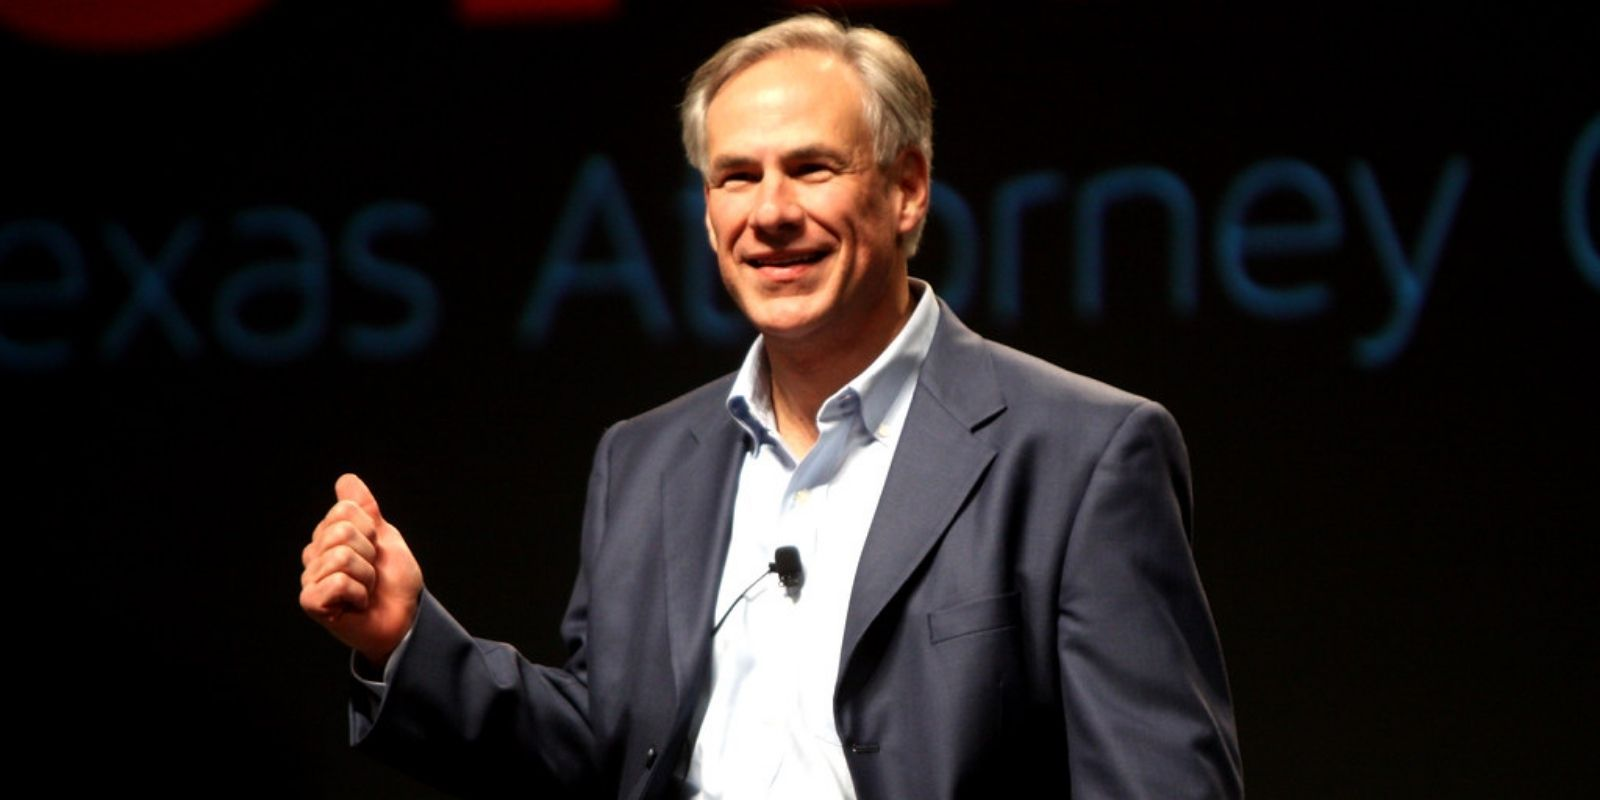 Gov. Abbott vows to hire Border Patrol agents if they're punished by Biden admin